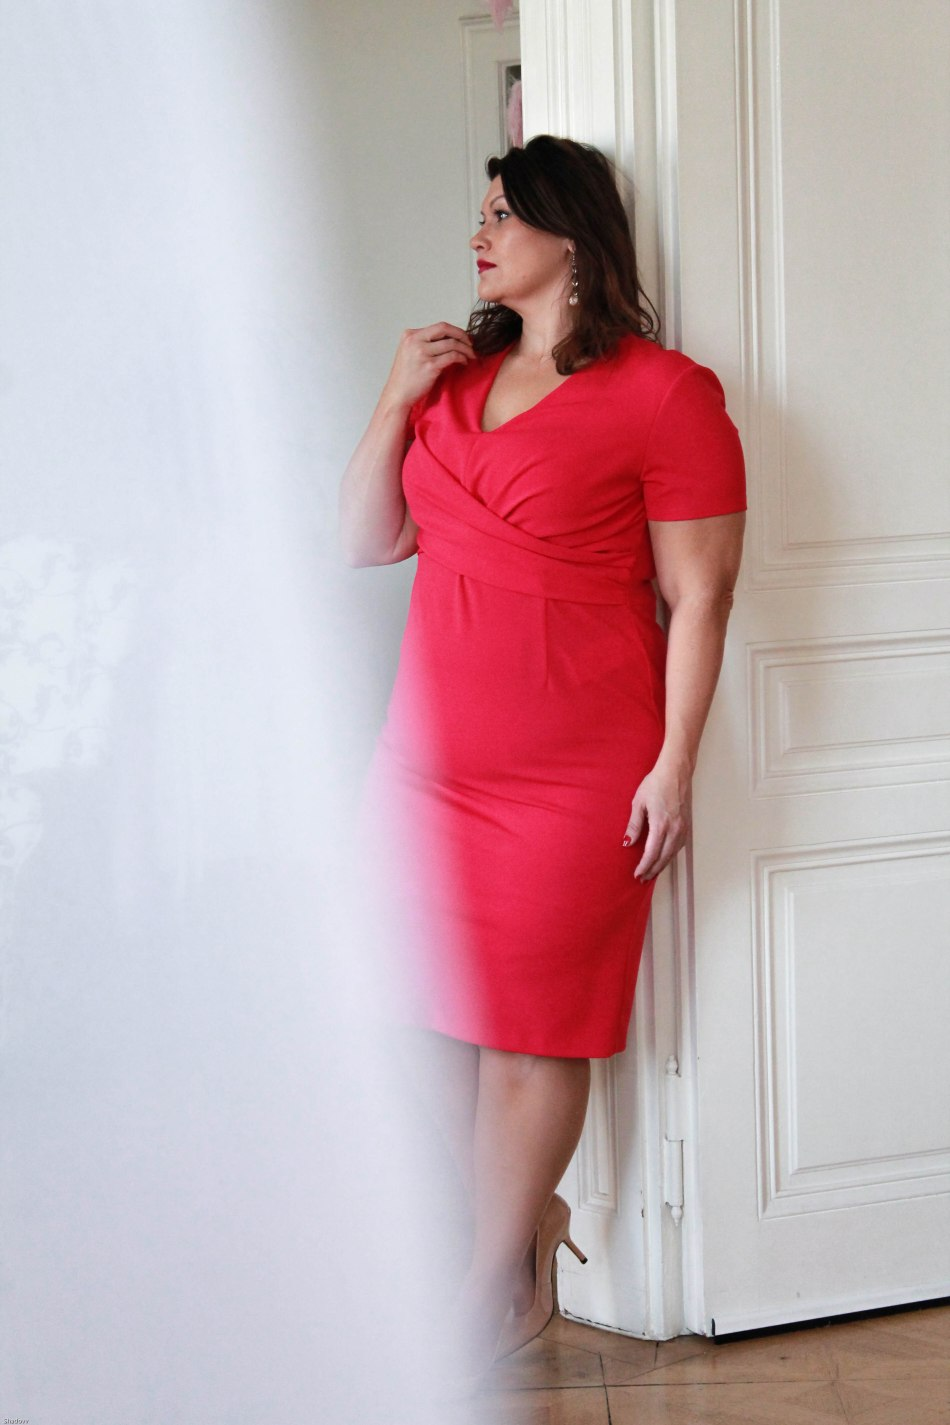 lady in magenta - 1 kleid 2 looks - plus size fashion